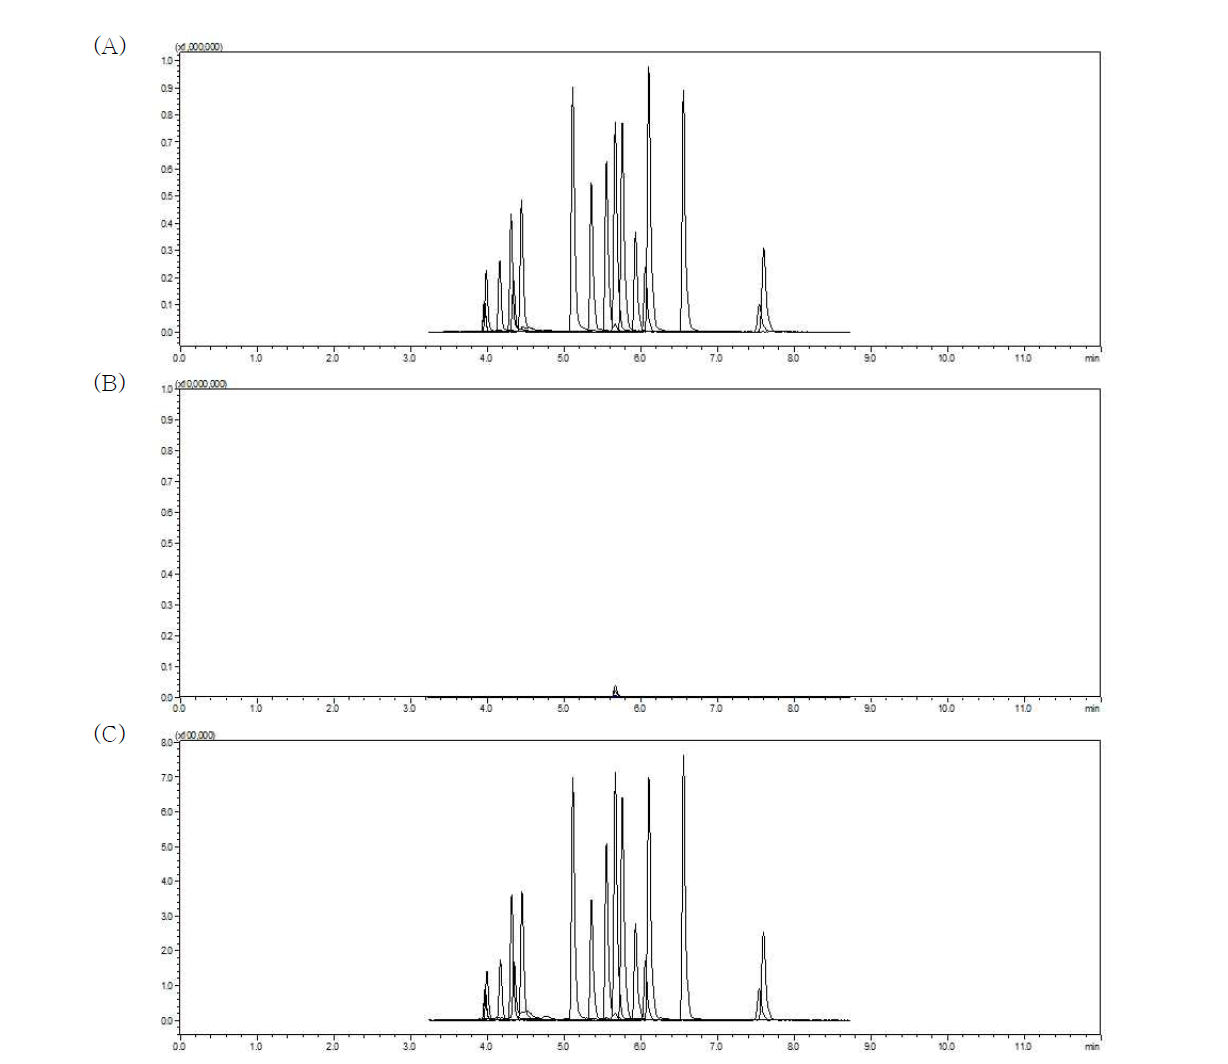 Chromatogram of dyes in cattles: Standard solution (A) (0.001 mg/L), matrix blank (B), dyes spiked sample (C) (0.005 mg/kg)